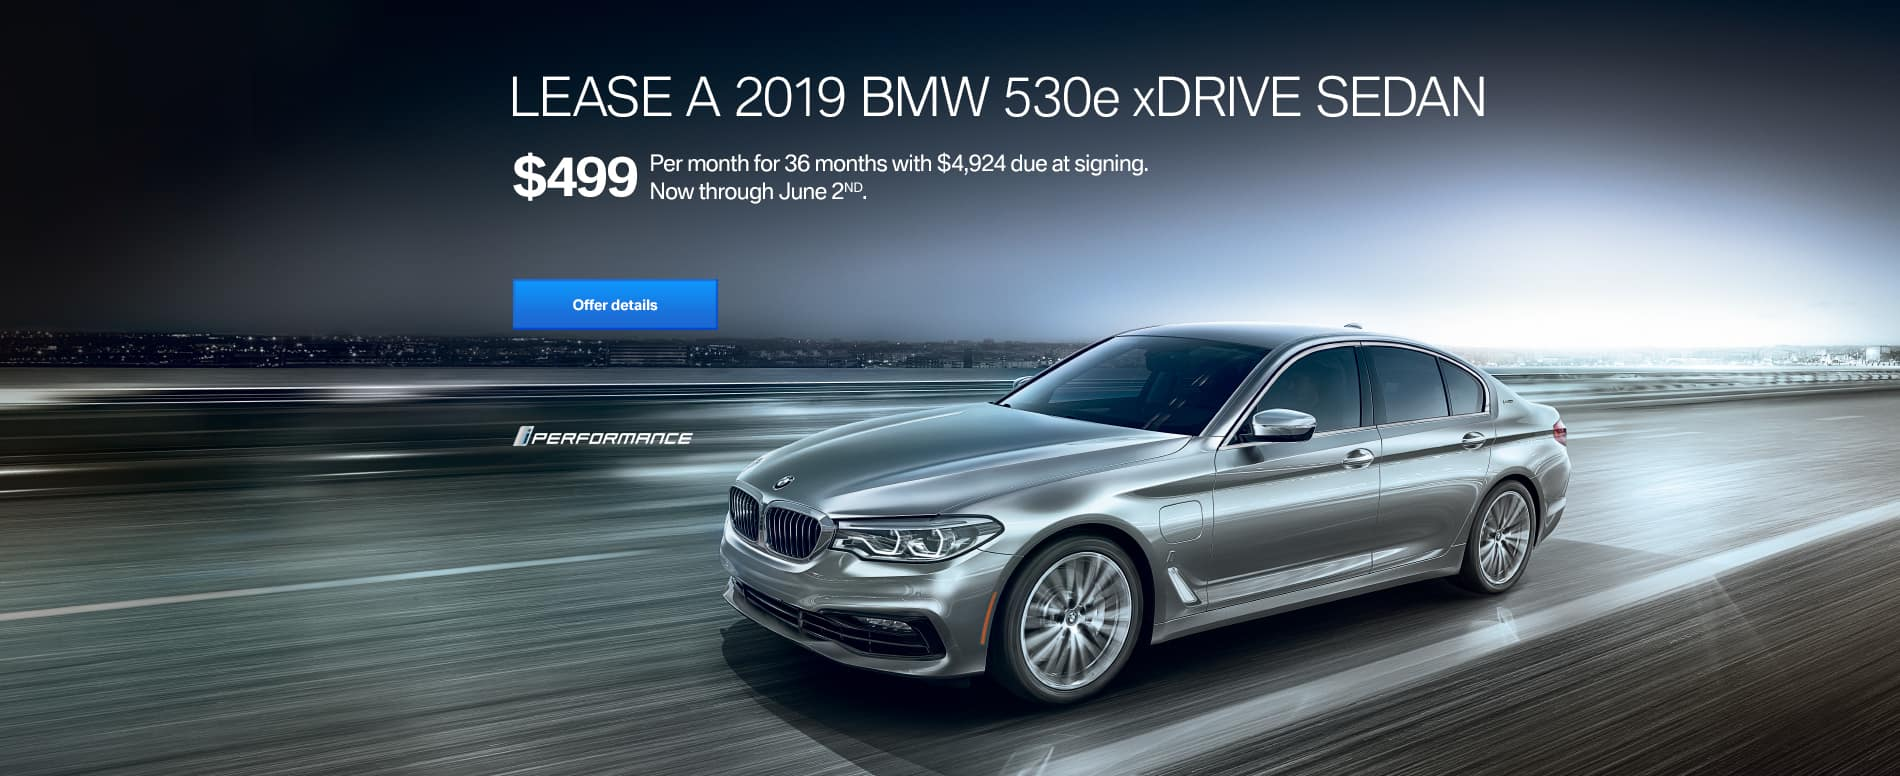 2019_530e_xDrive_iPerformance_499